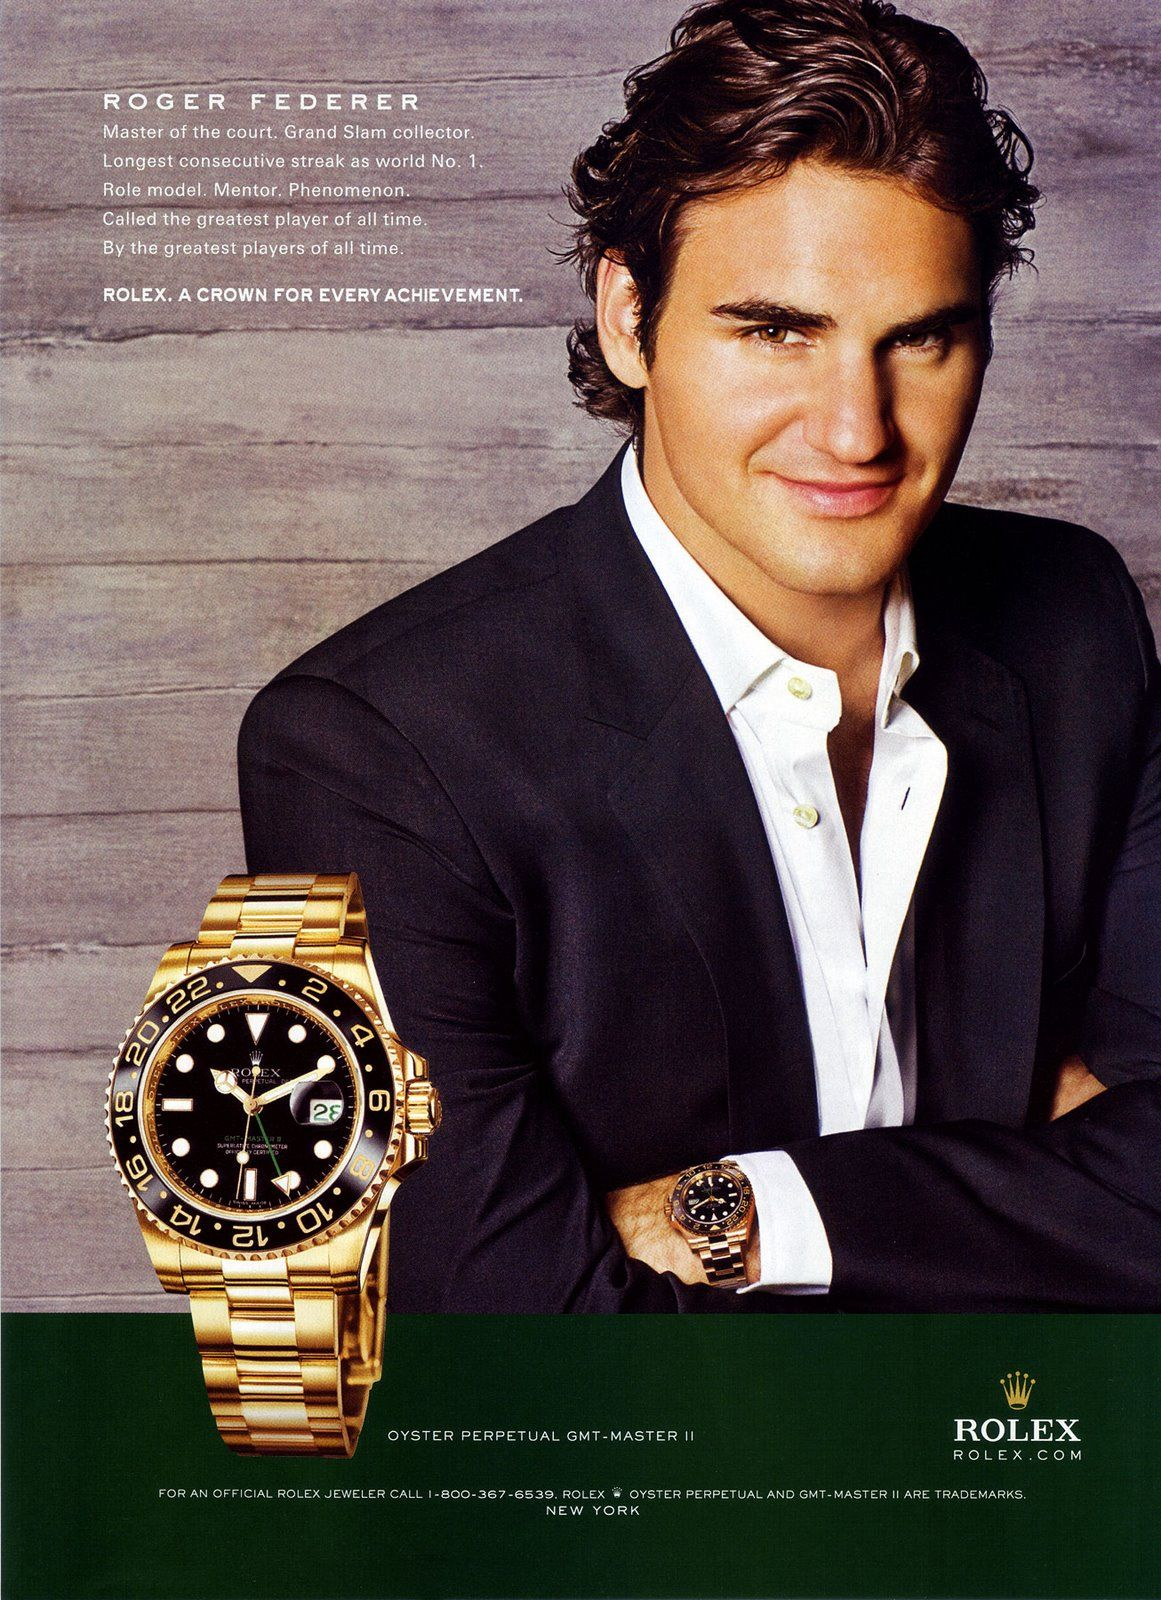 Roger Federer Rolex Watch I Cant Even Obsessed With Rolex Rolex